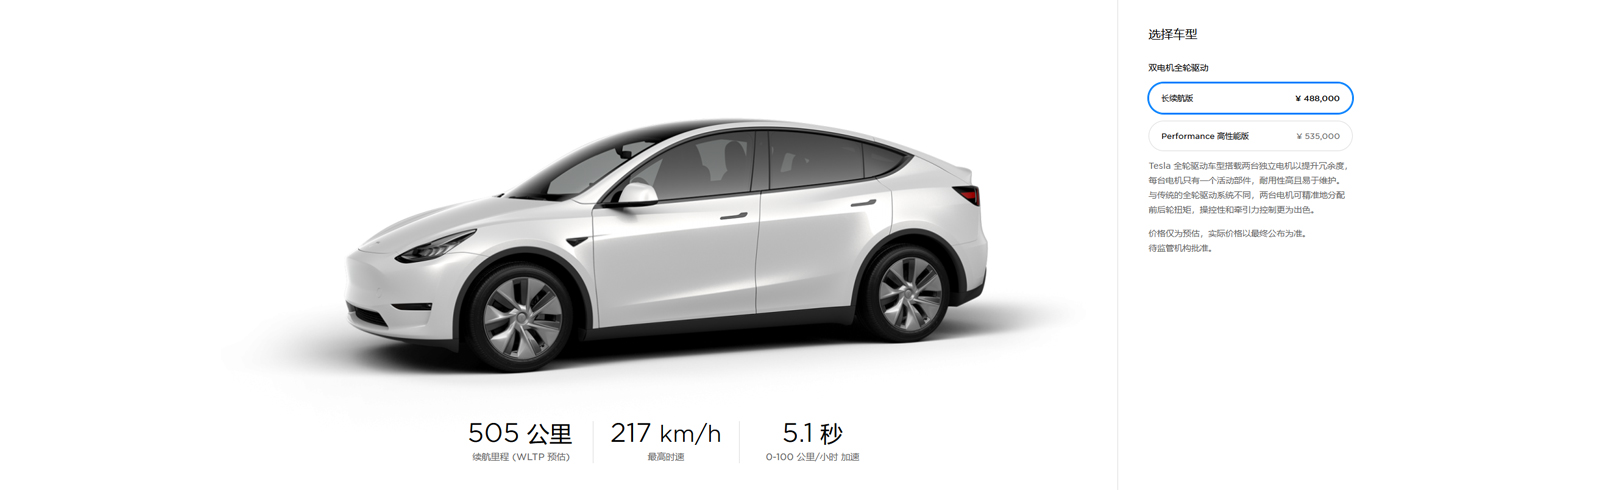 The Model Y produced at the Tesla Giga Shanghai granted permission for sales and purchase tax exemption